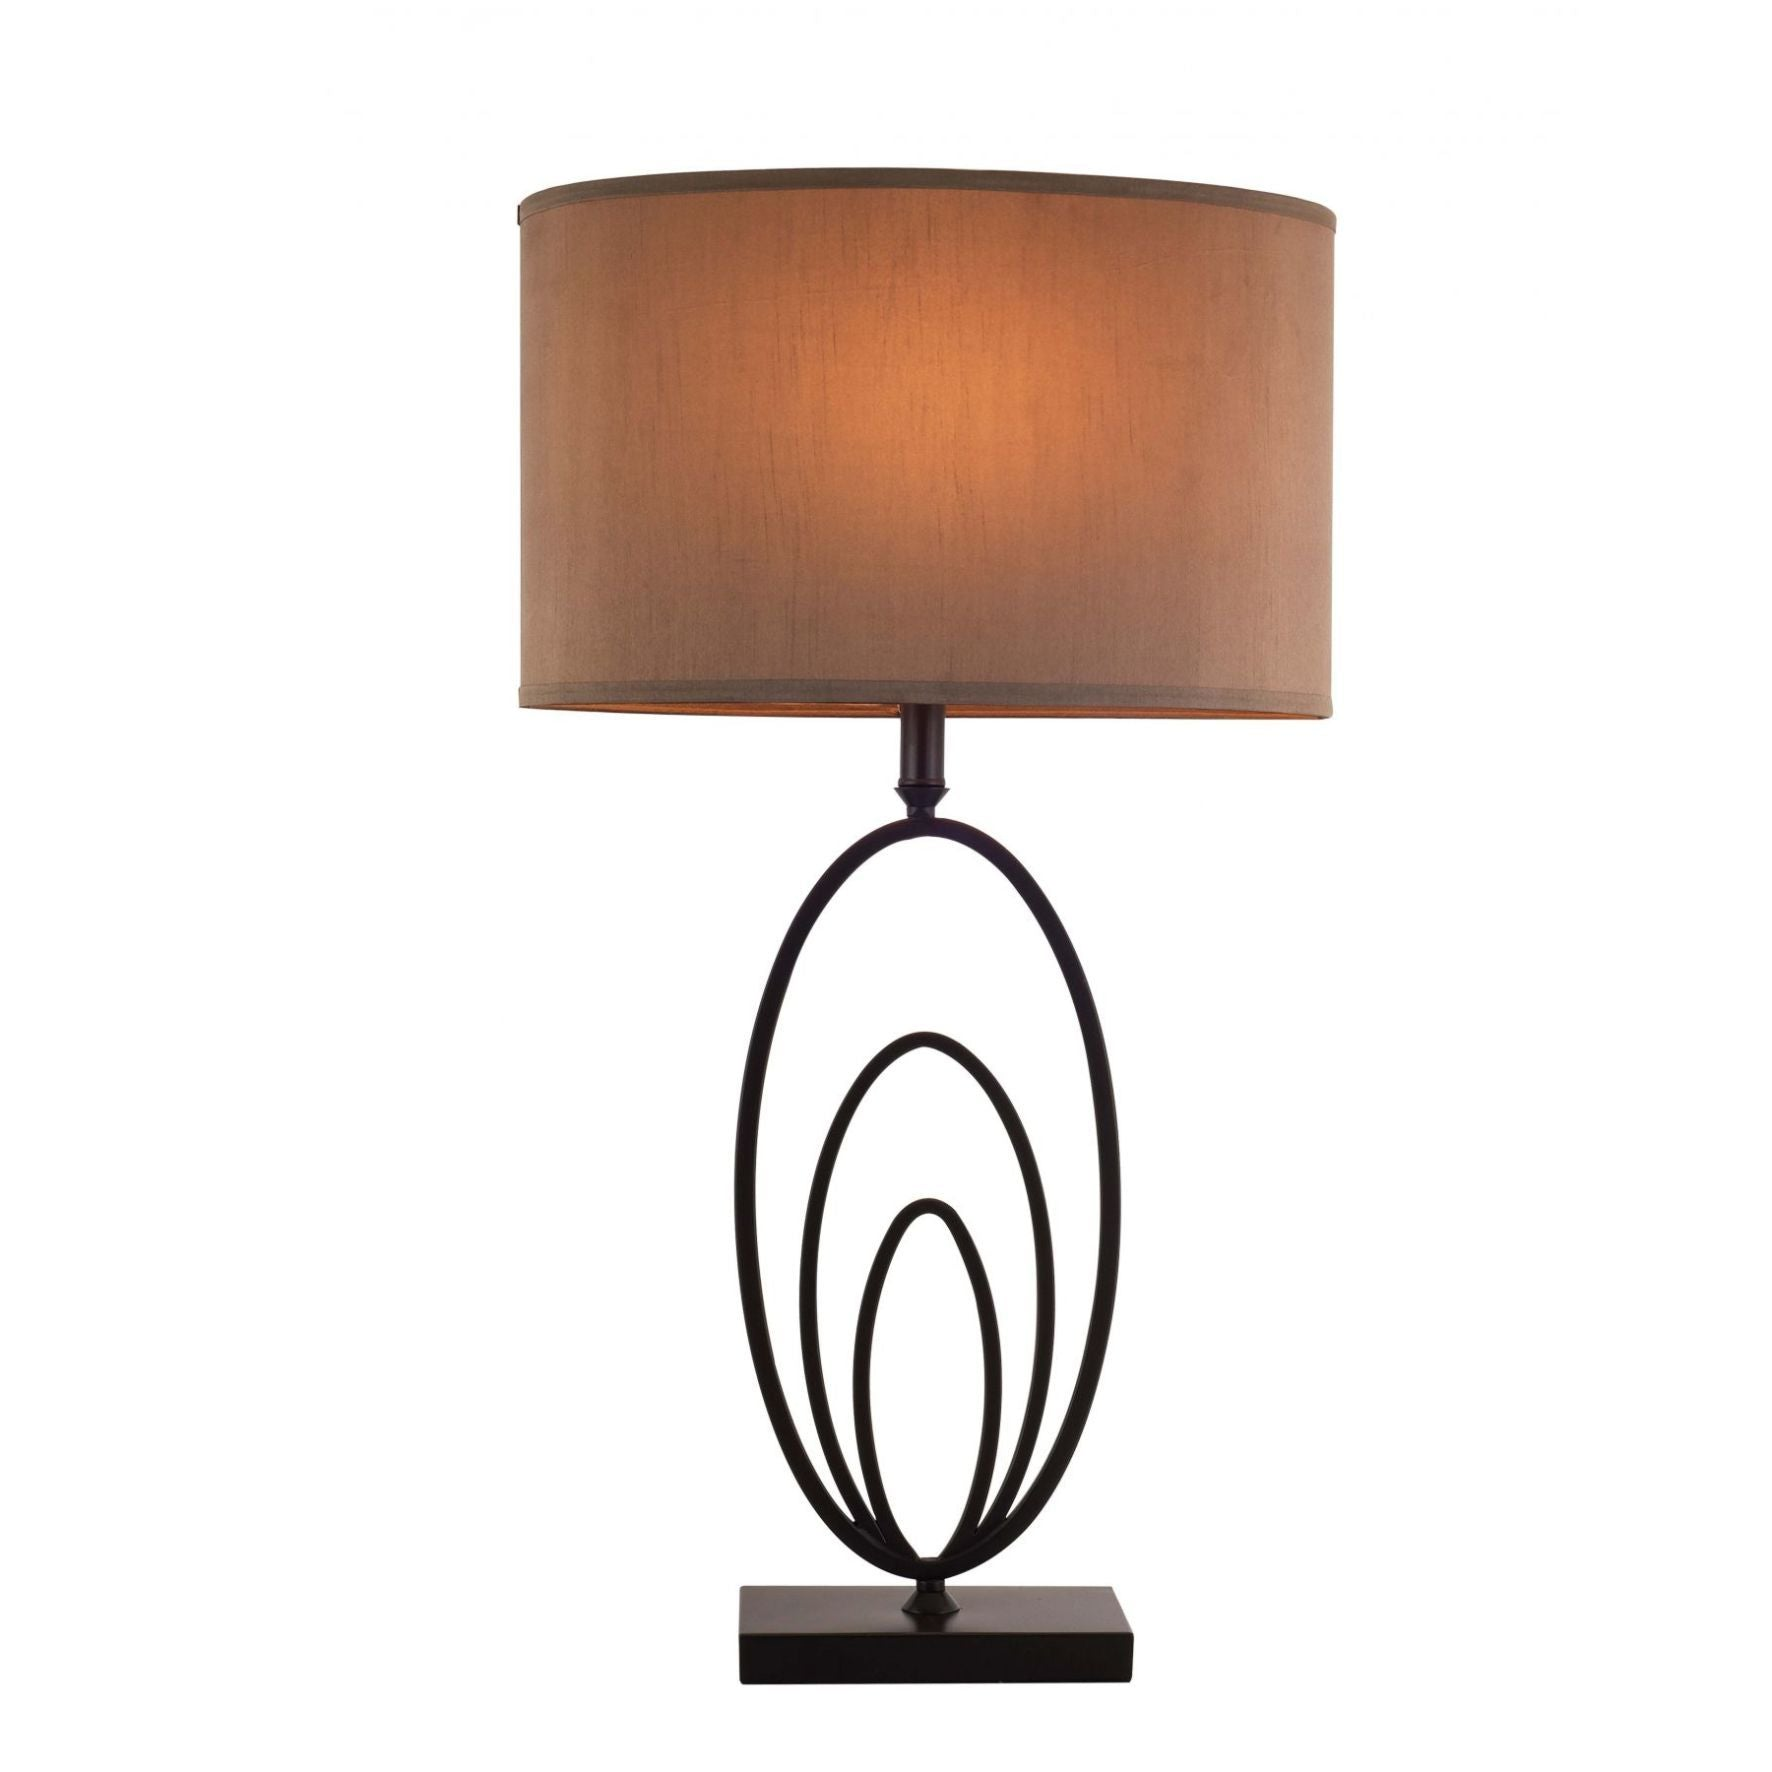 Magnalux Ovalo Oil Rubbed Bronze Table Lamp C/W Shade